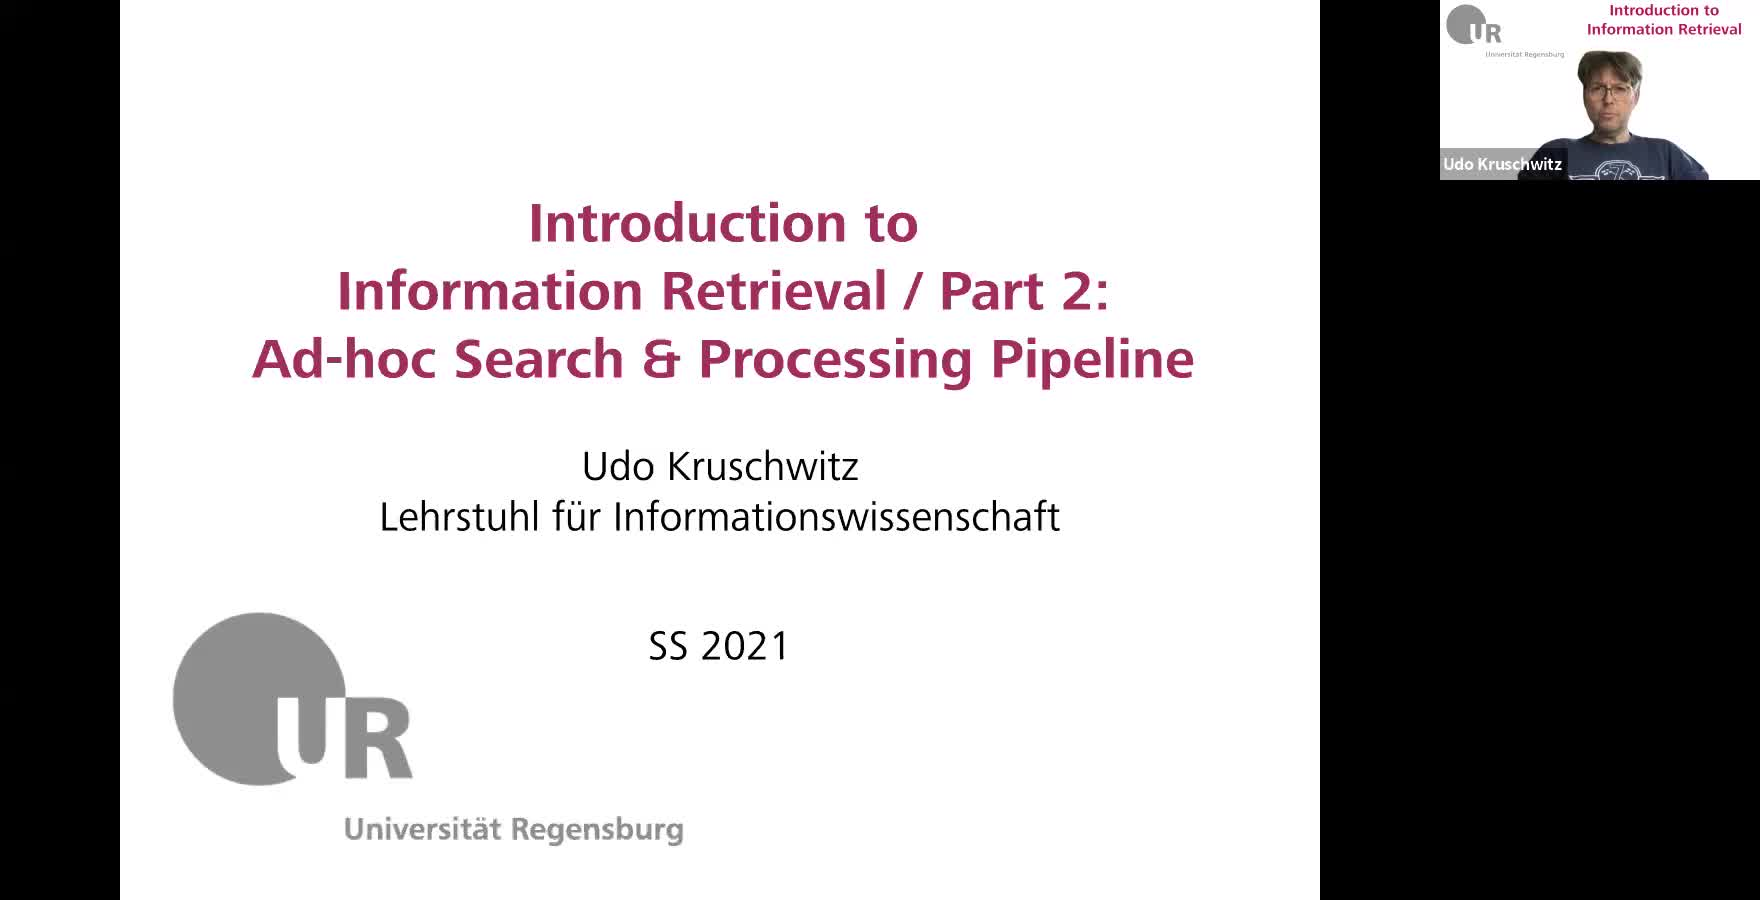 Introduction to Information Retrieval - Lecture 2 (Ad-hoc search and processing pipeline)